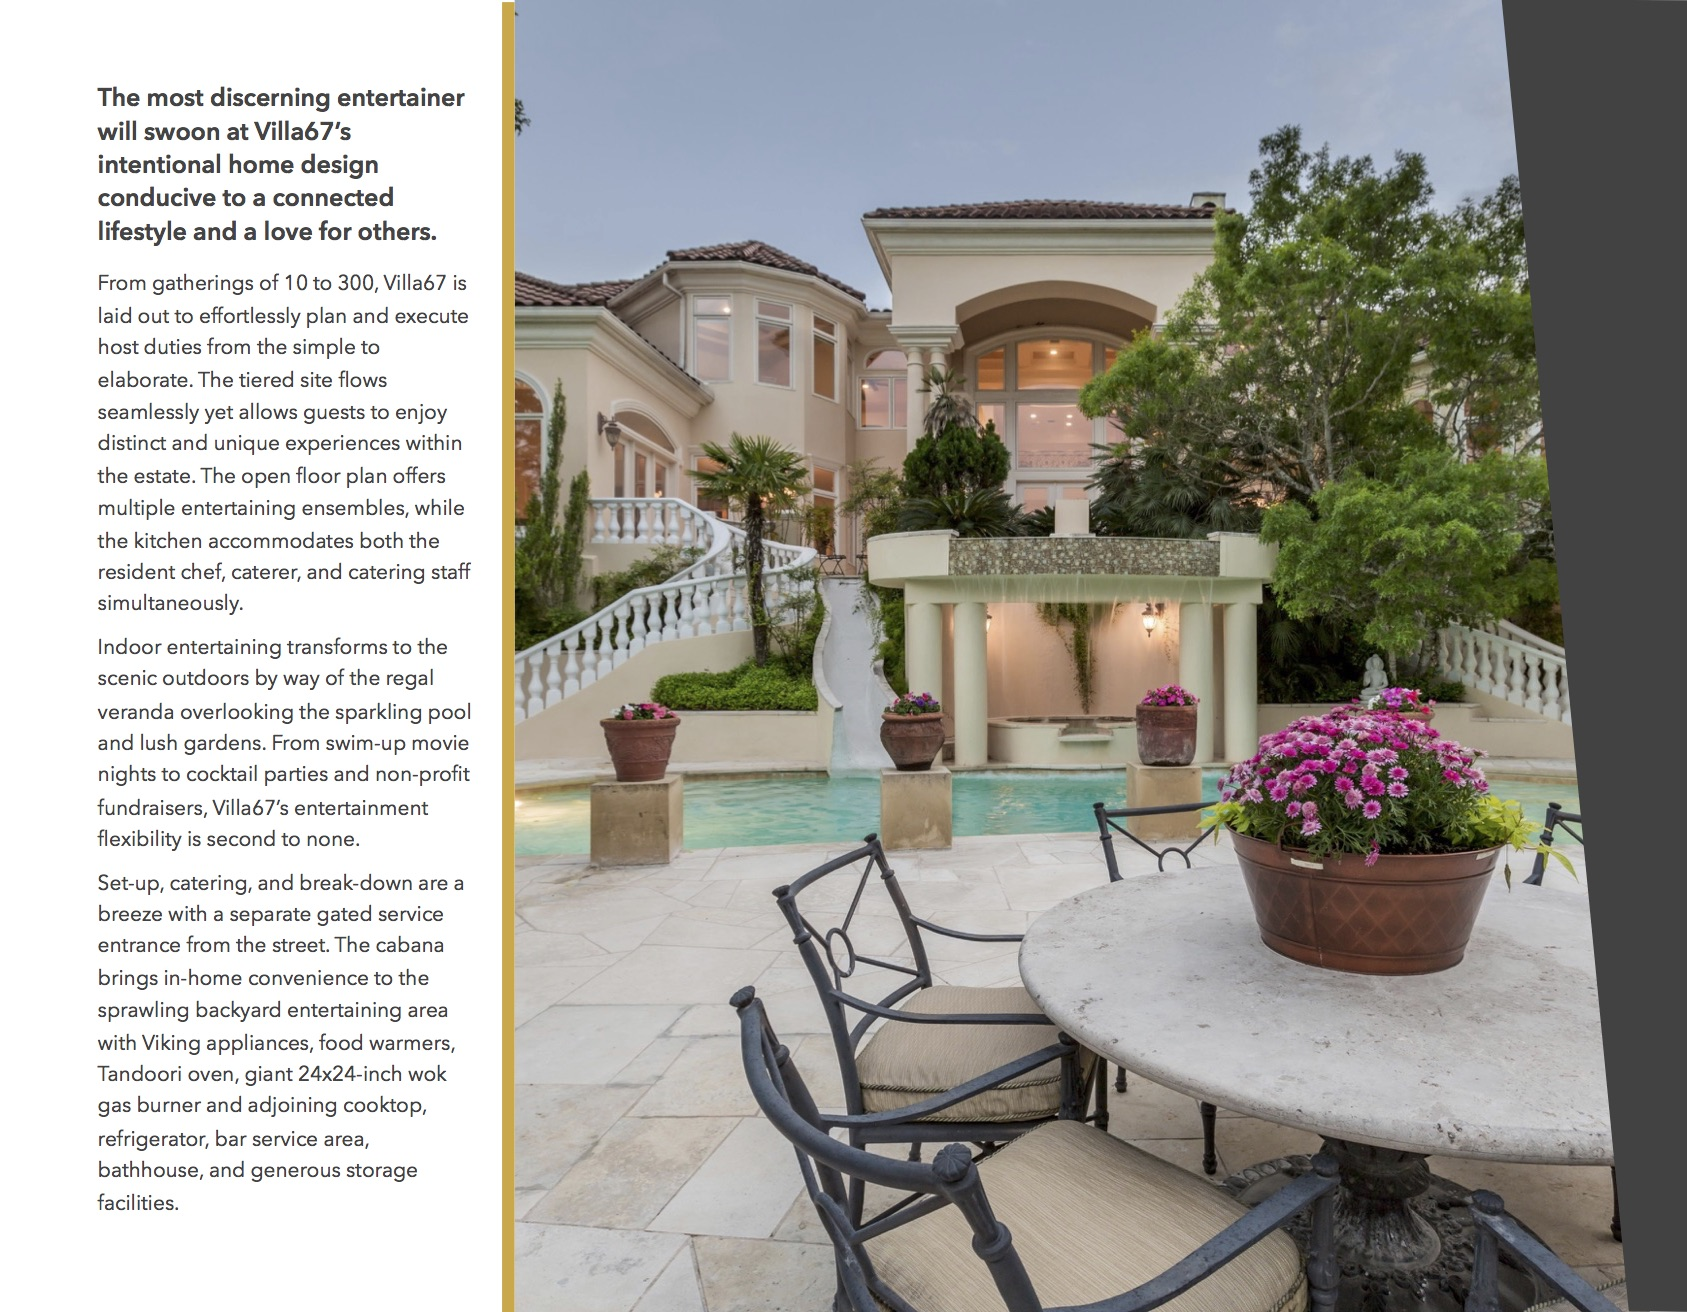 Luxury Property Brochure (12 Pages) - Agent Operations® | The Full-Service on gate home designs, foyer home designs, atrium home designs, frontier home designs, vintage home designs, canopy home designs, royal home designs, tahoe home designs, pool home designs, patio home designs, living home designs, bathroom home designs, garage home designs, cornerstone home designs, rooftop home designs, bungalow home designs, clerestory home designs, nantucket home designs, window home designs, meridian home designs,